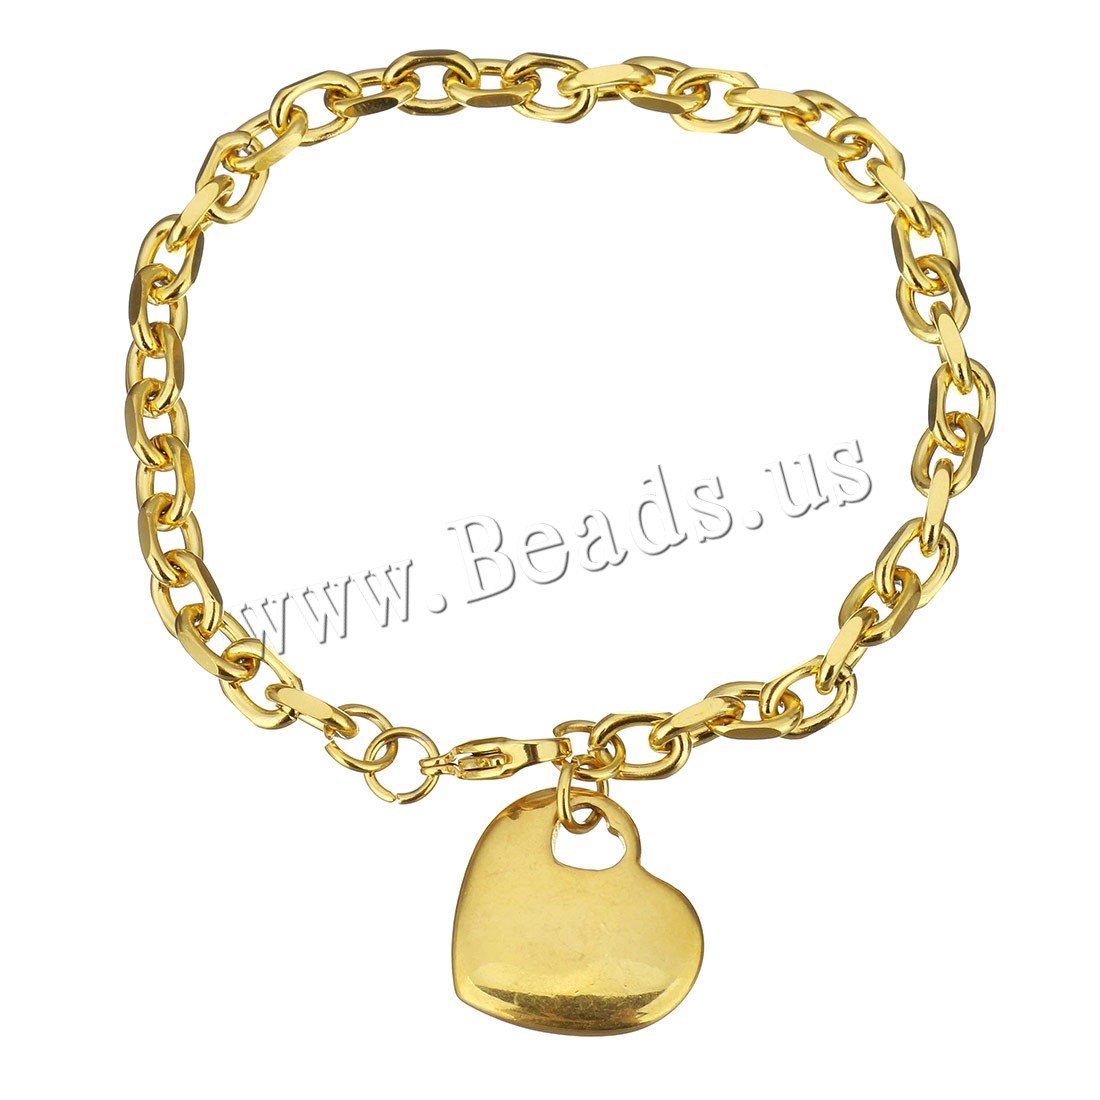 Buy Stainless Steel Jewelry Bracelet Heart gold color plated charm bracelet & curb chain & woman 20x19mm 5mm Sold Per Approx 15.6 Inch Strand